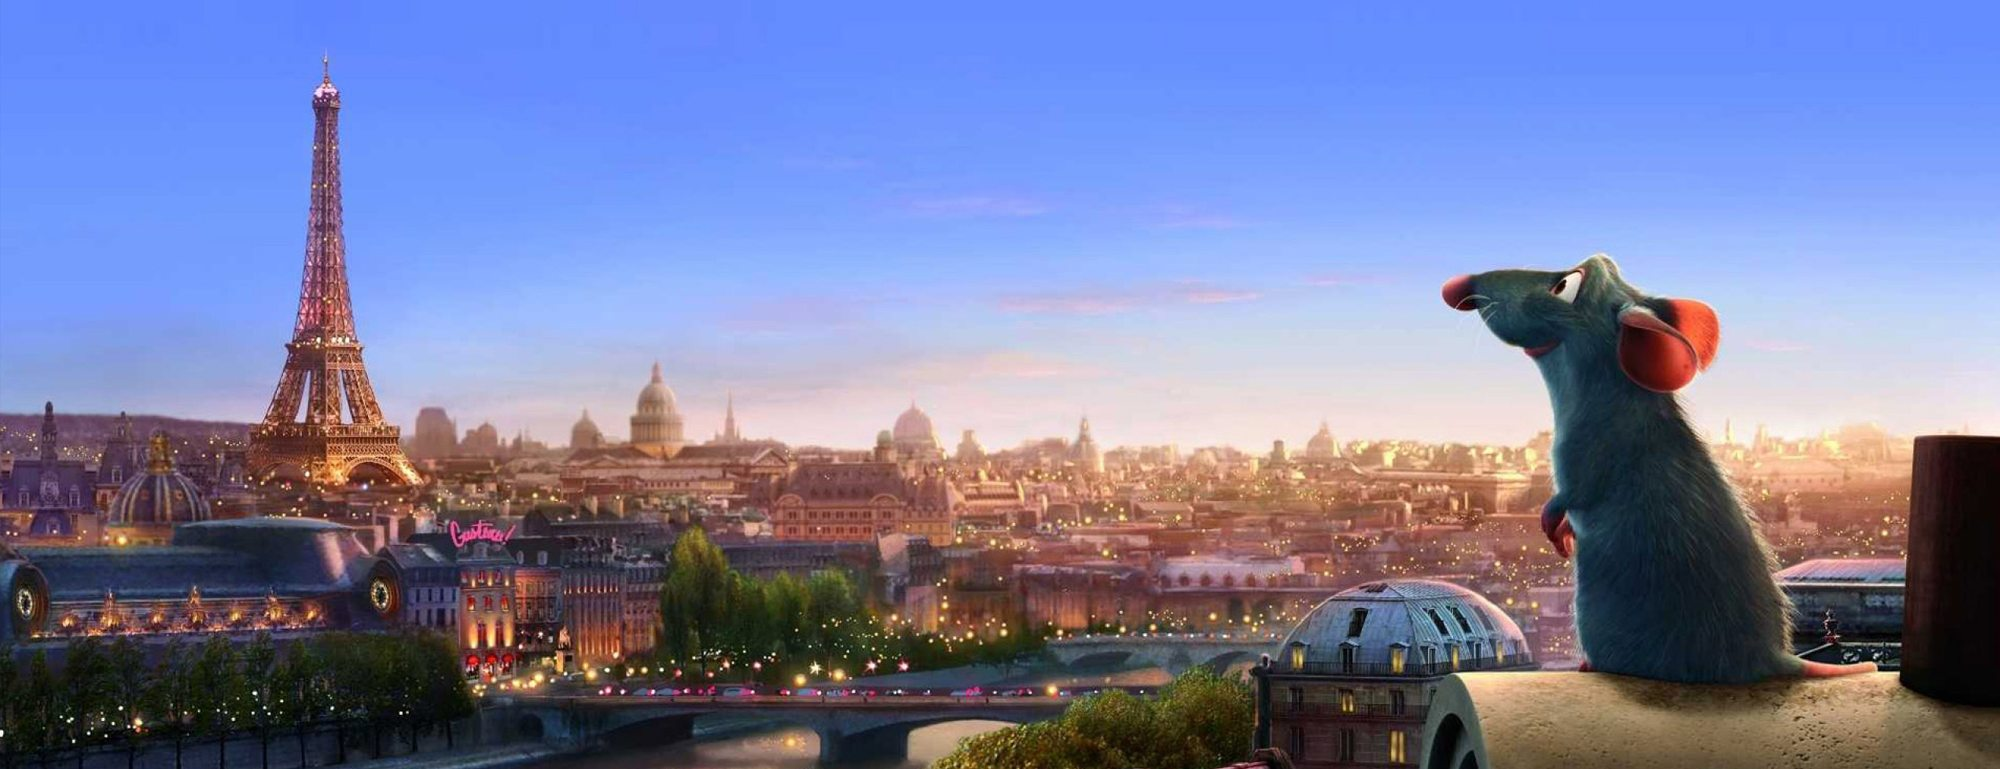 A snippet from the Ratatouille animation